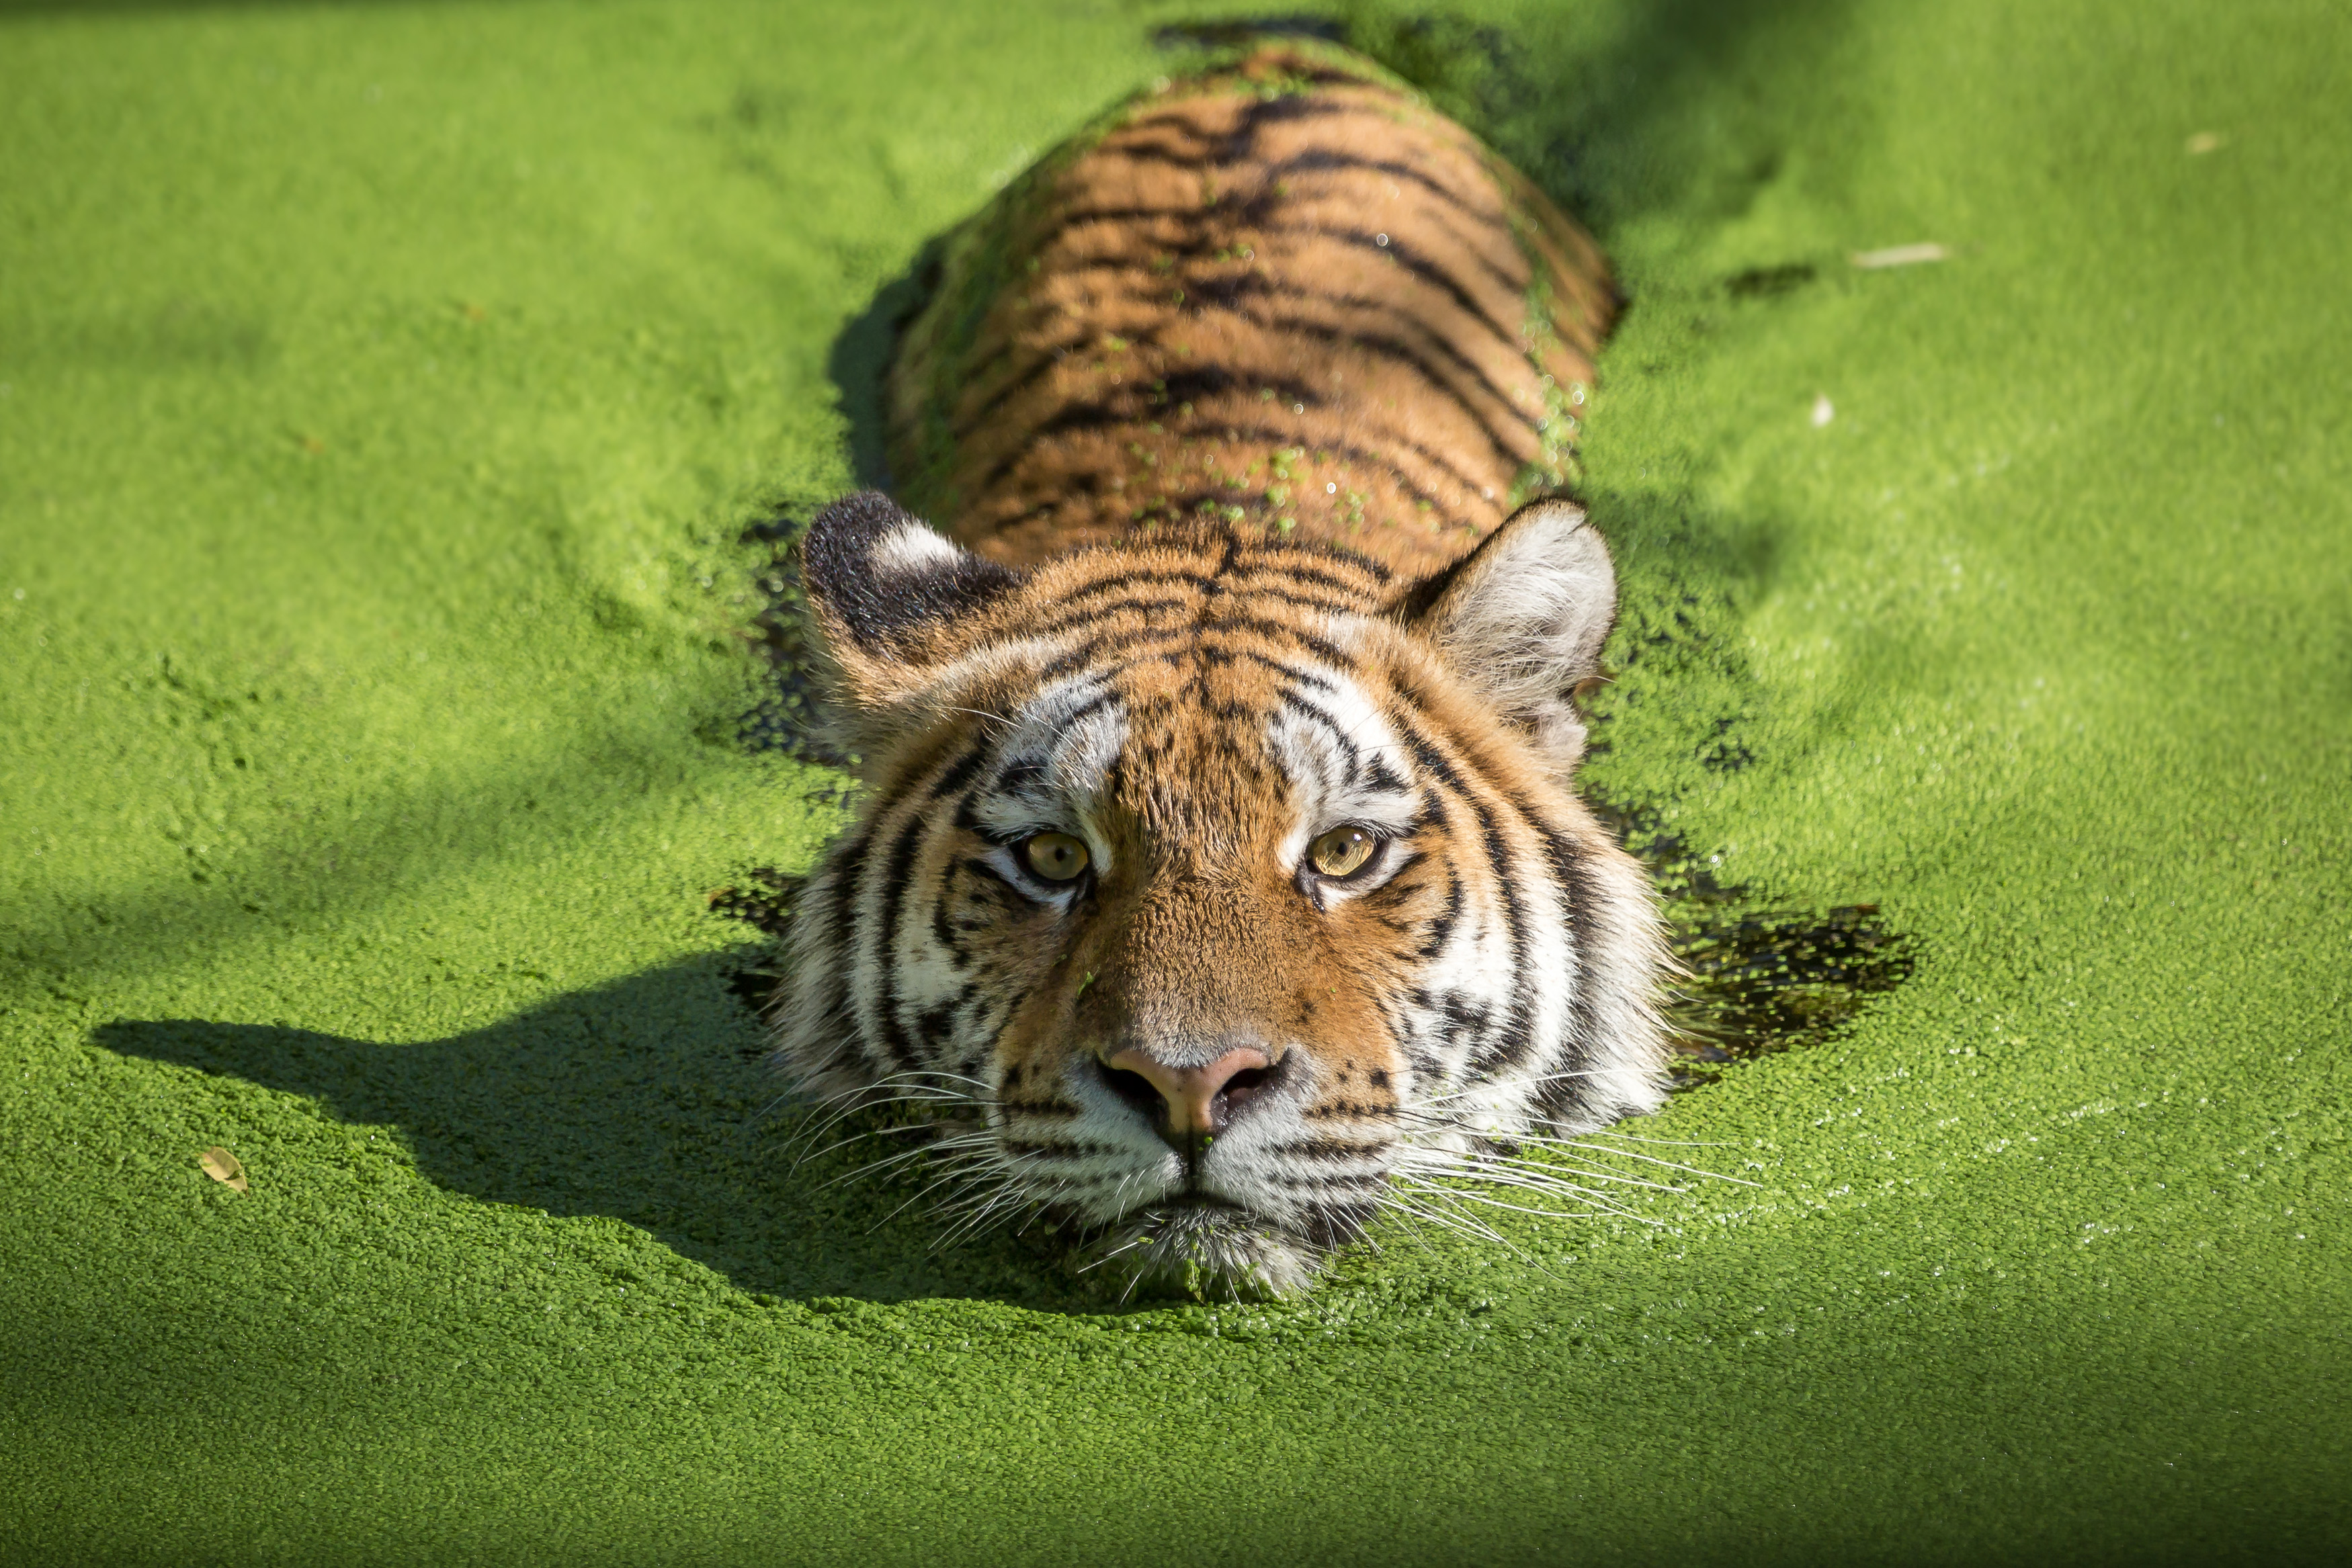 Cute Cubs Wallpaper Tiger Takes A Dip In Algae Covered Water